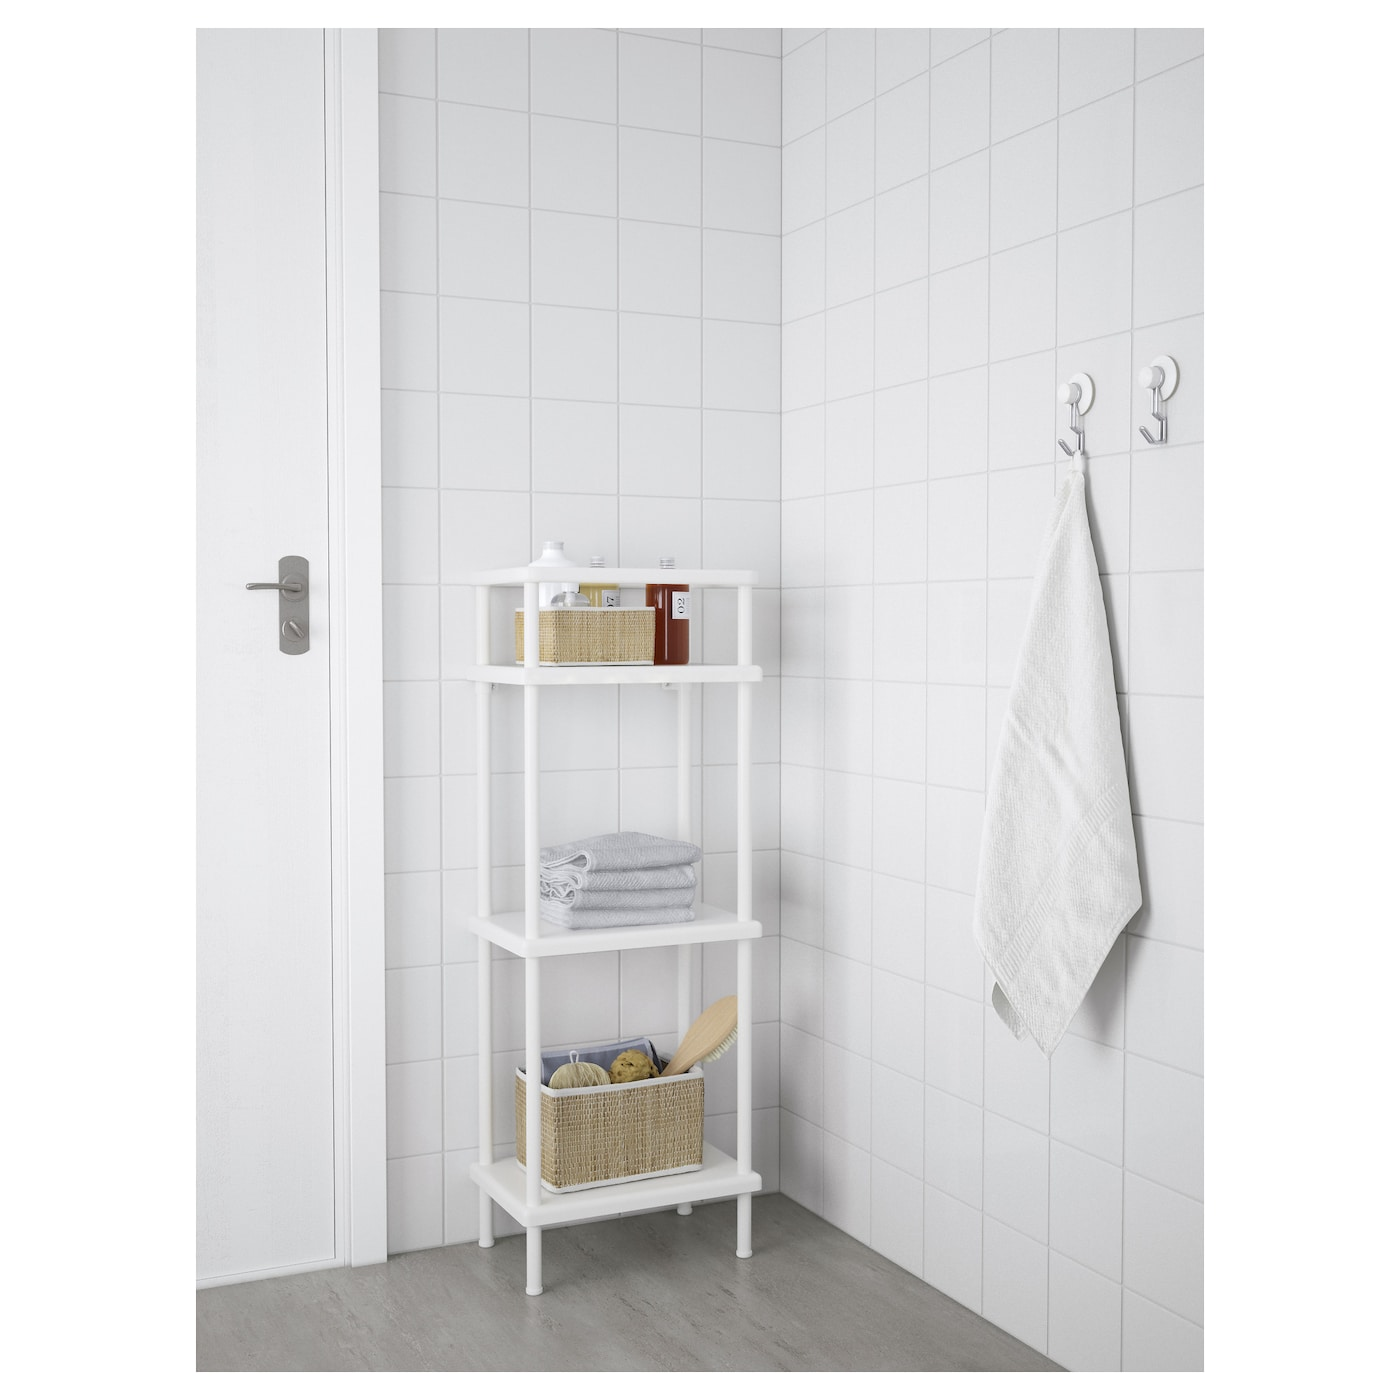 dynan tag re avec porte serviettes blanc 40x27x108 cm ikea. Black Bedroom Furniture Sets. Home Design Ideas